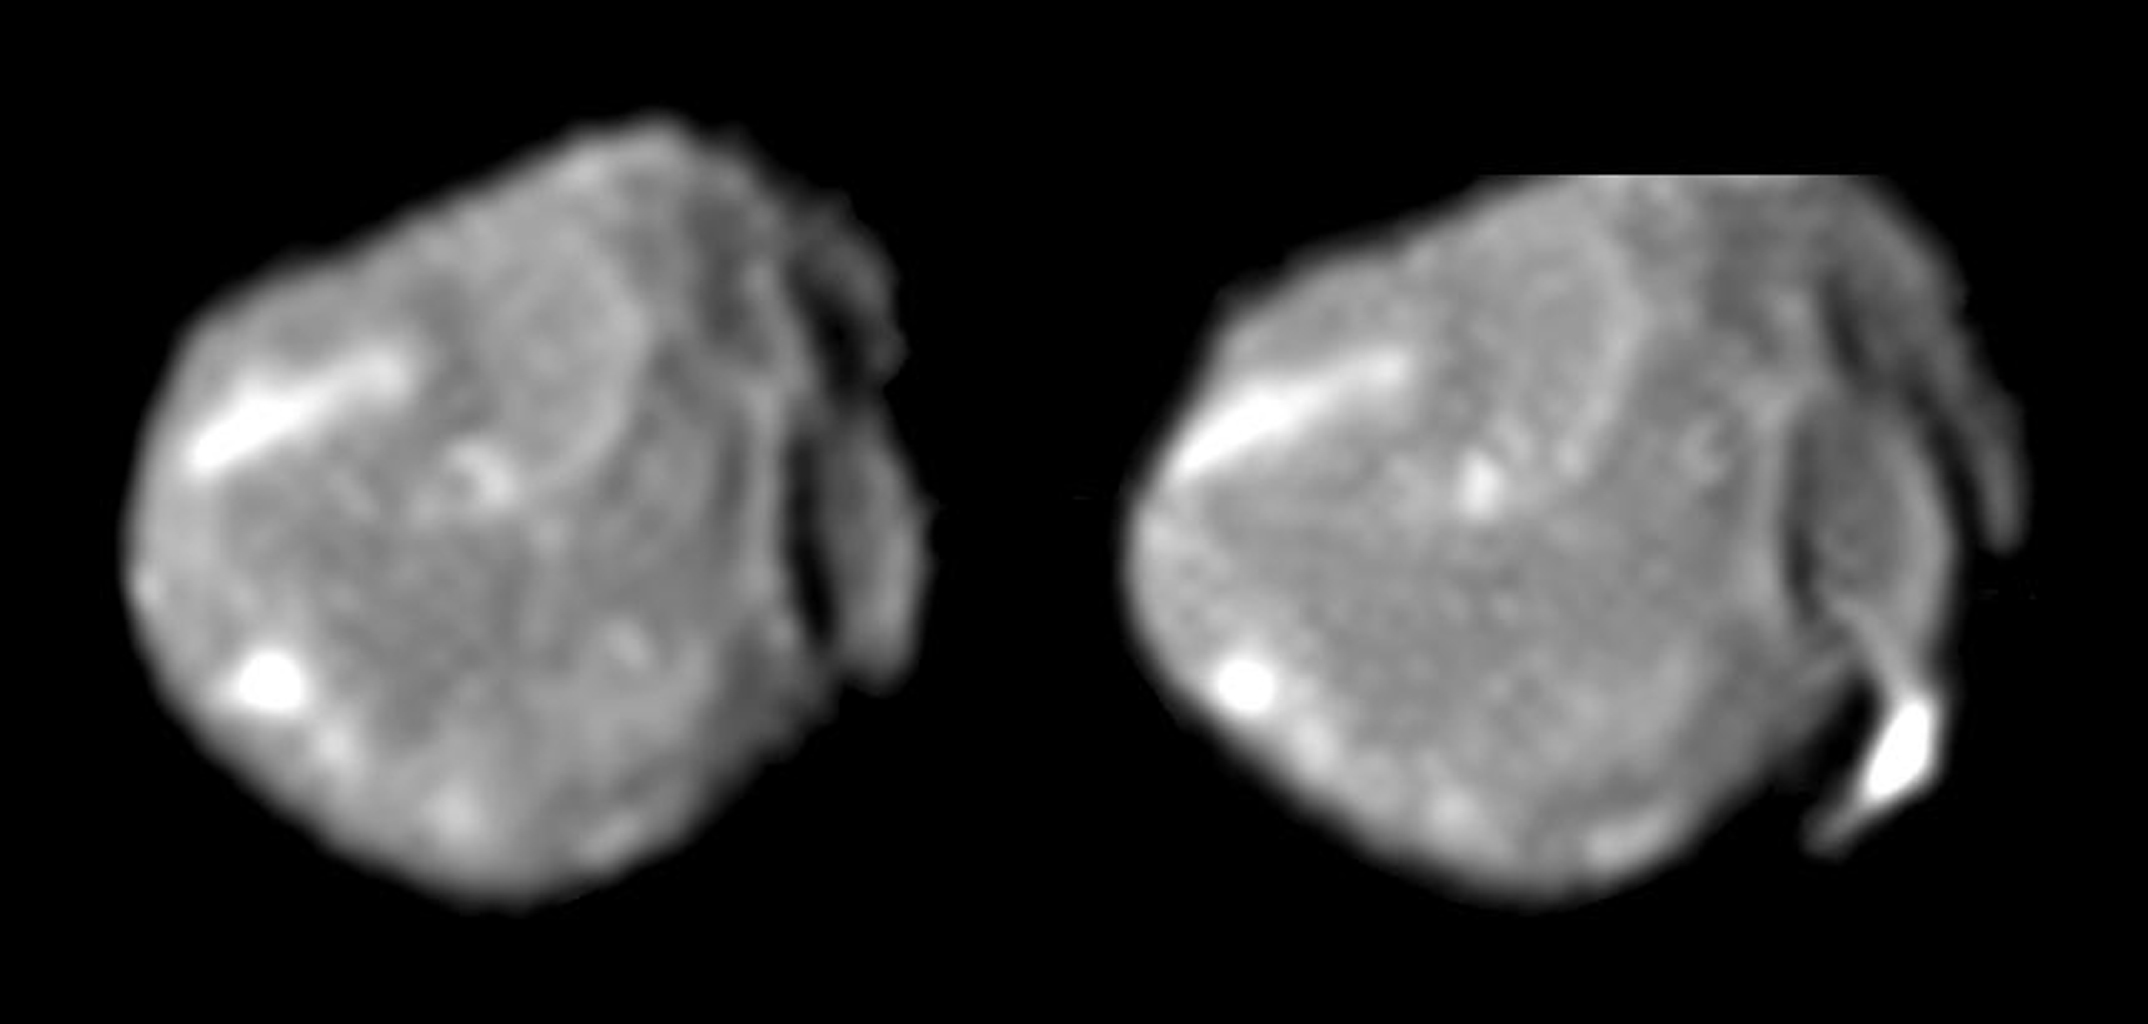 These two images of Jupiter's small, irregularly shaped moon Amalthea, obtained by the camera onboard NASA's Galileo spacecraft, form a 'stereo pair' that helps scientists determine this moon's shape and the topography of its surface features.